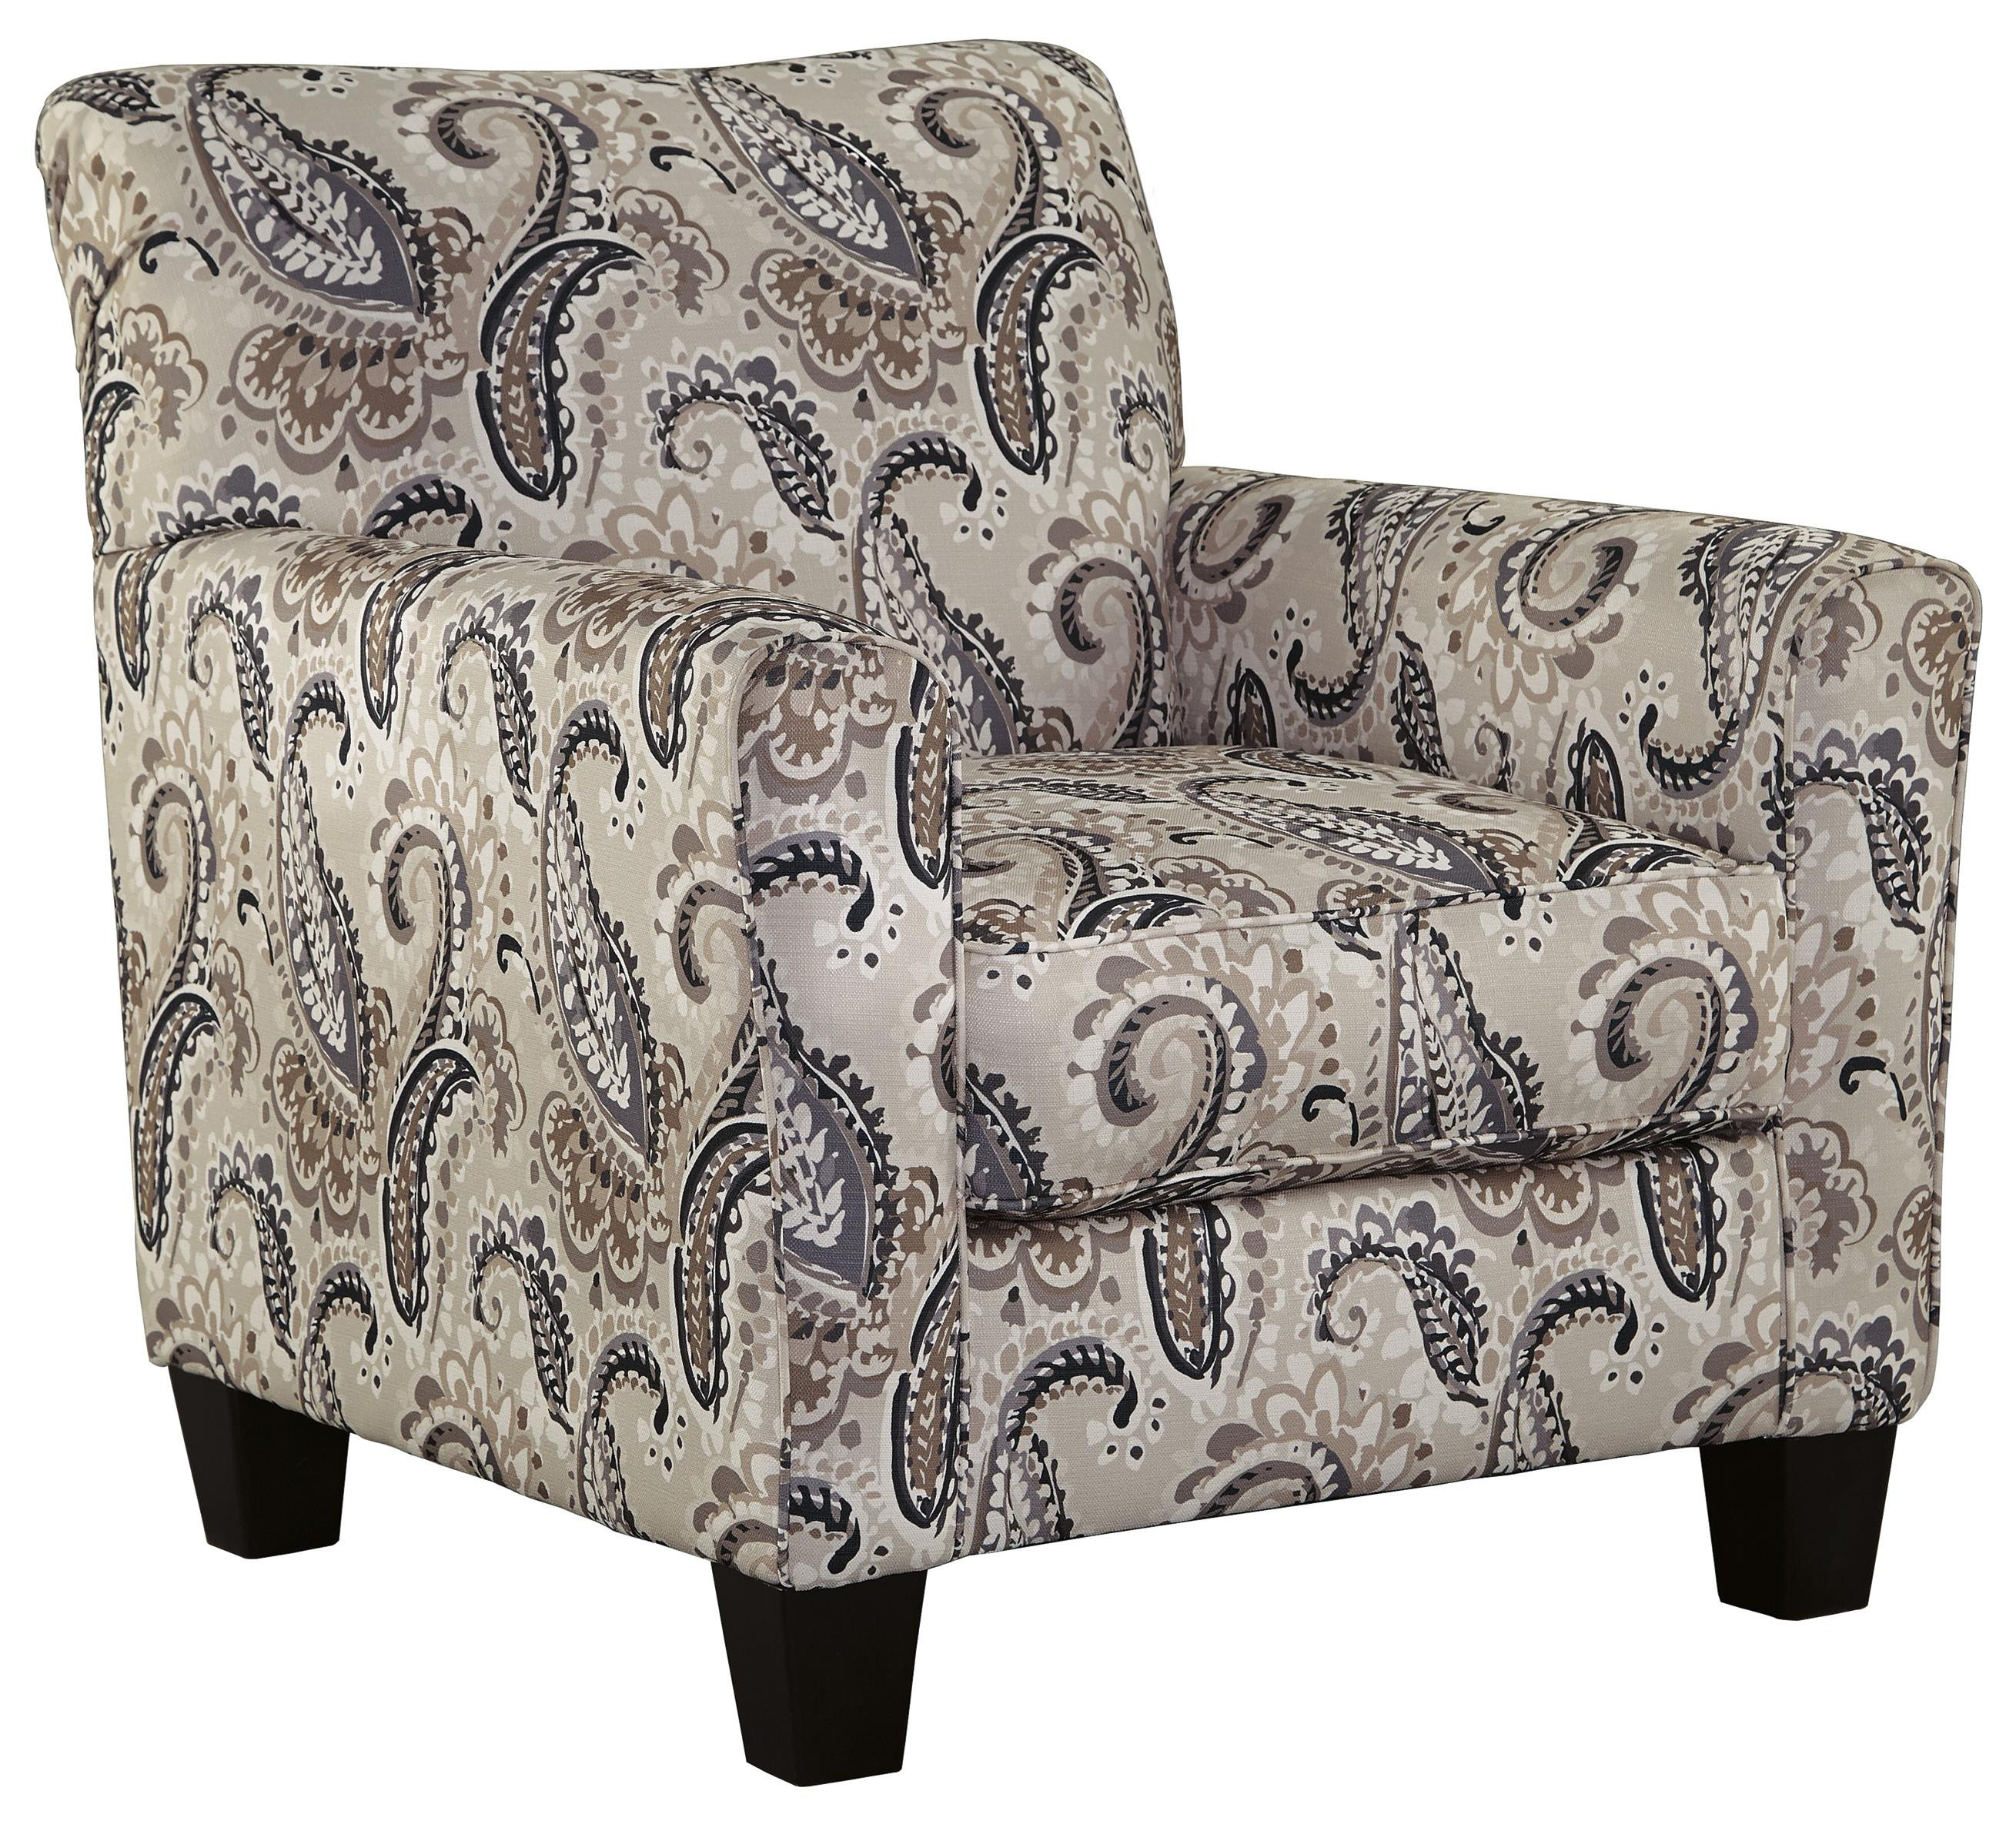 Signature Design by Ashley Melaya Accent Chair - Item Number: 4780021